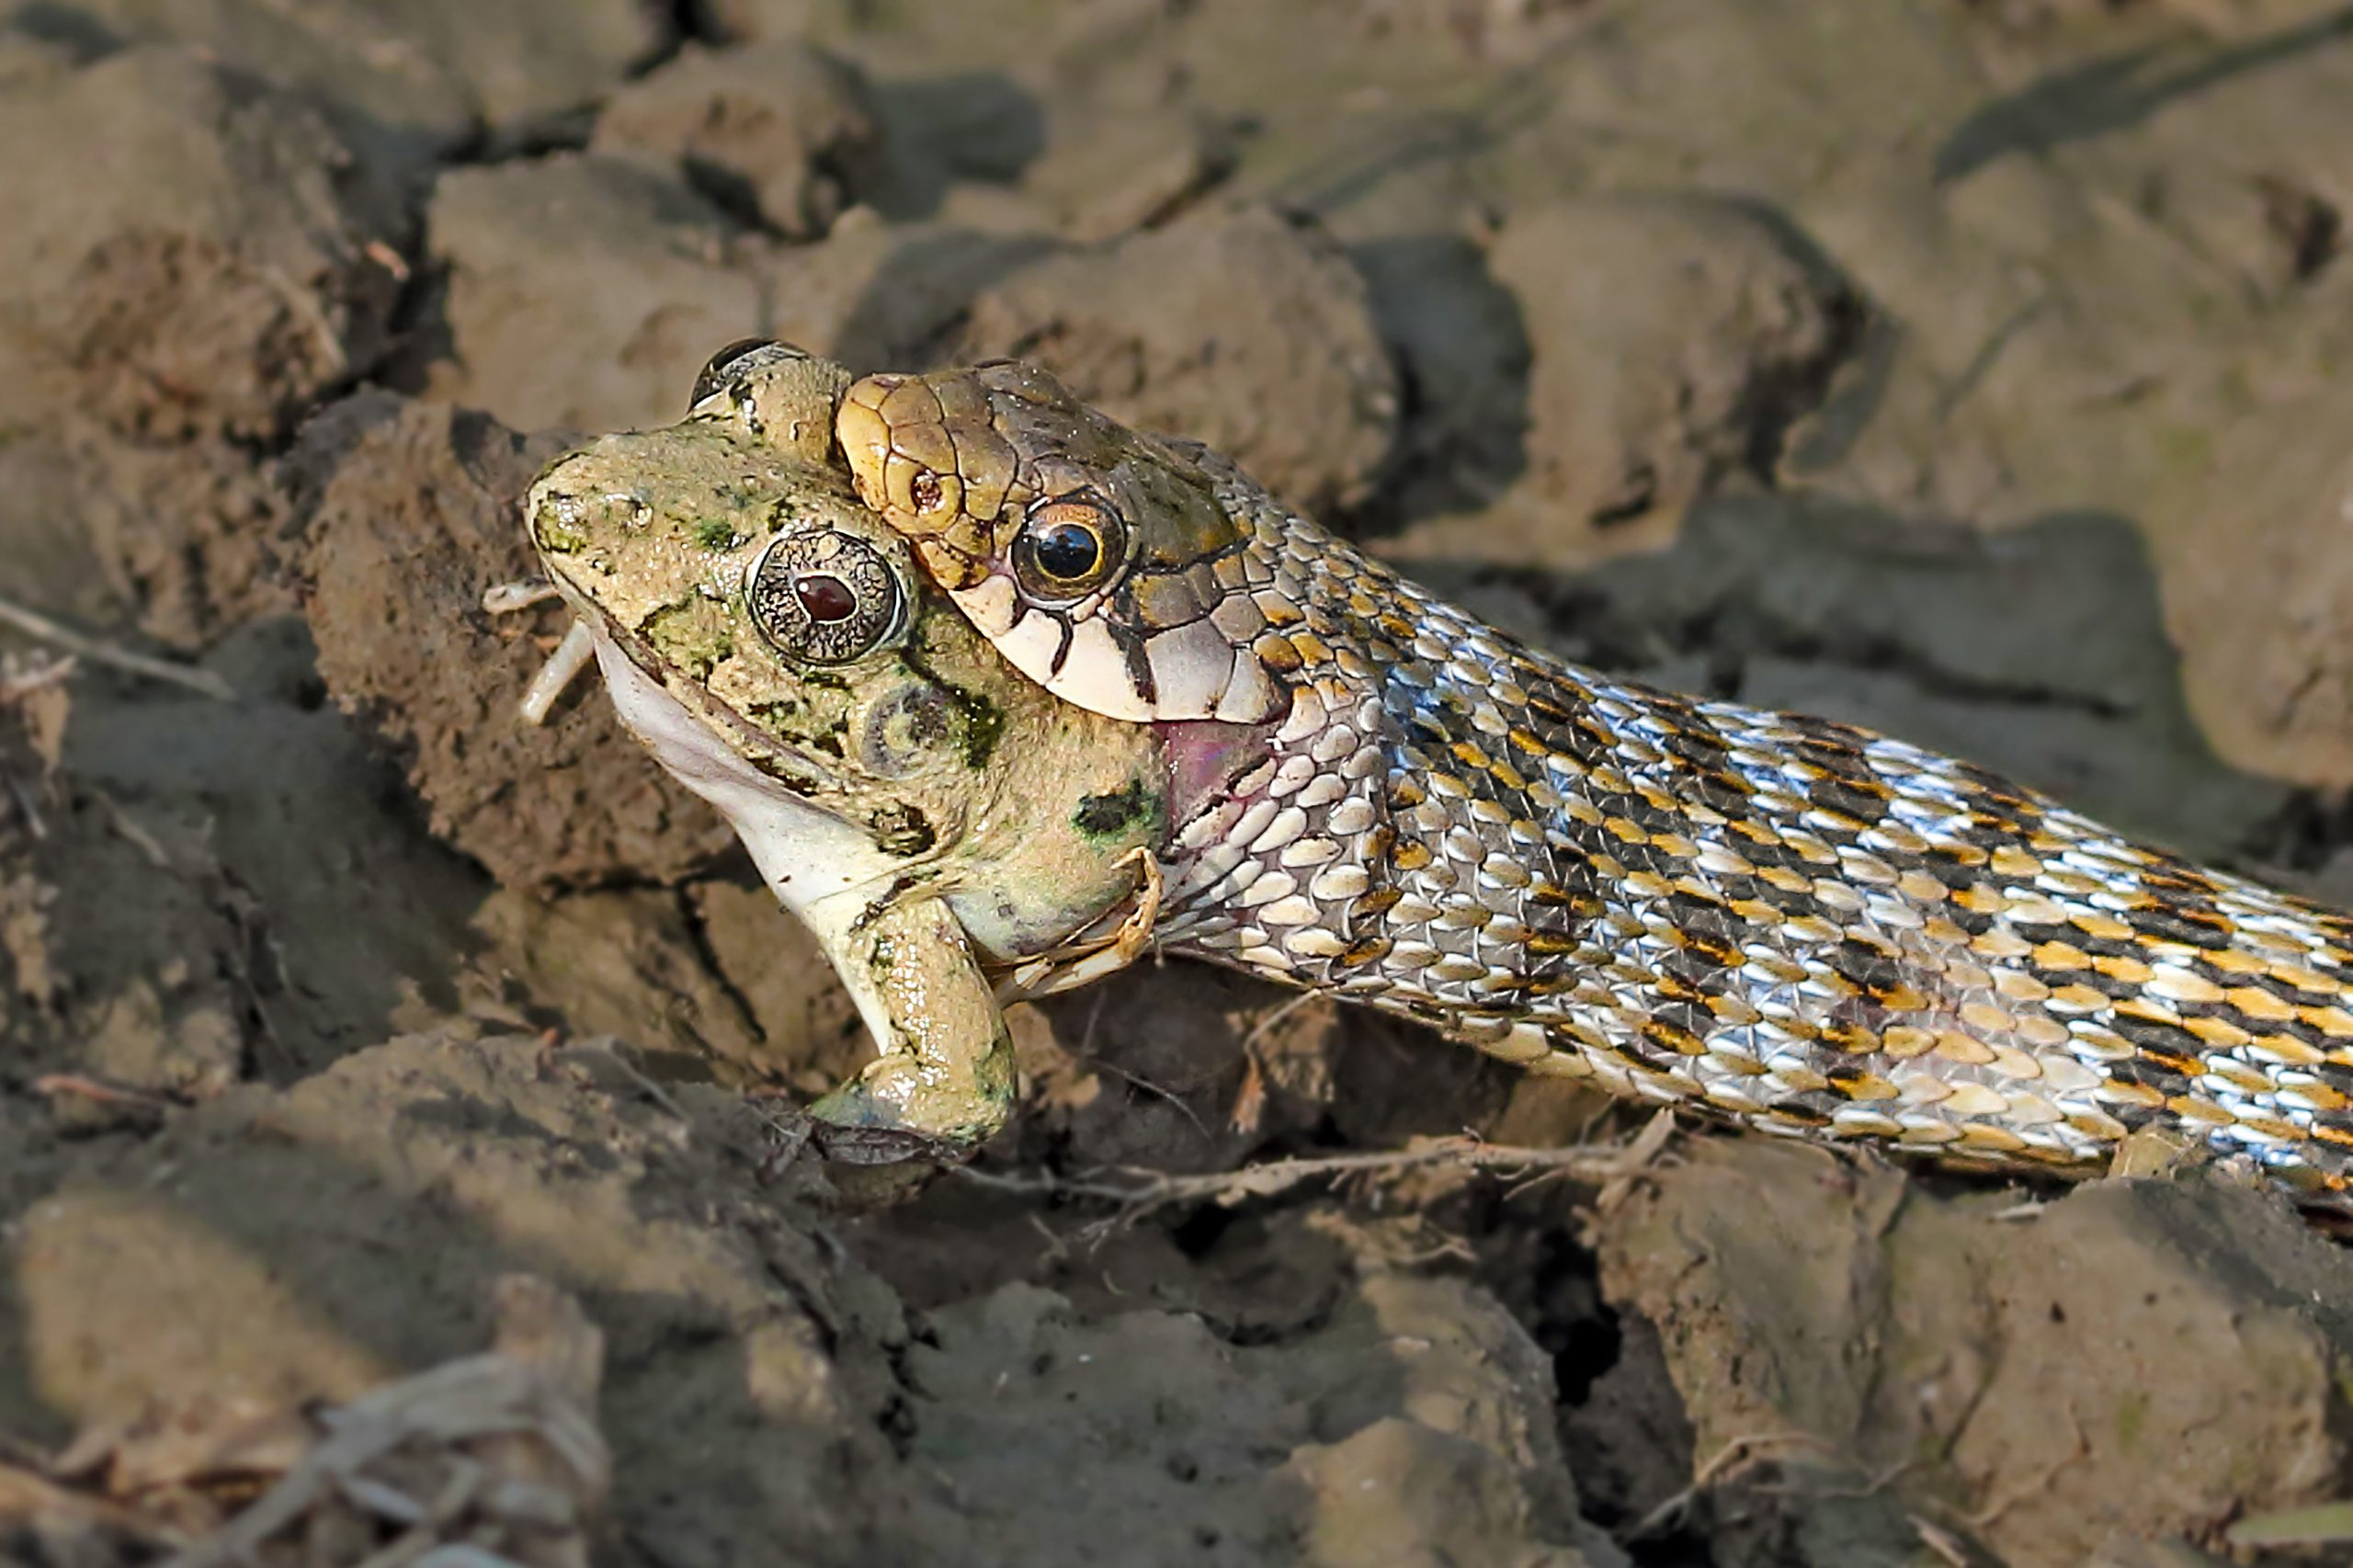 Snake catching a frog in mouth